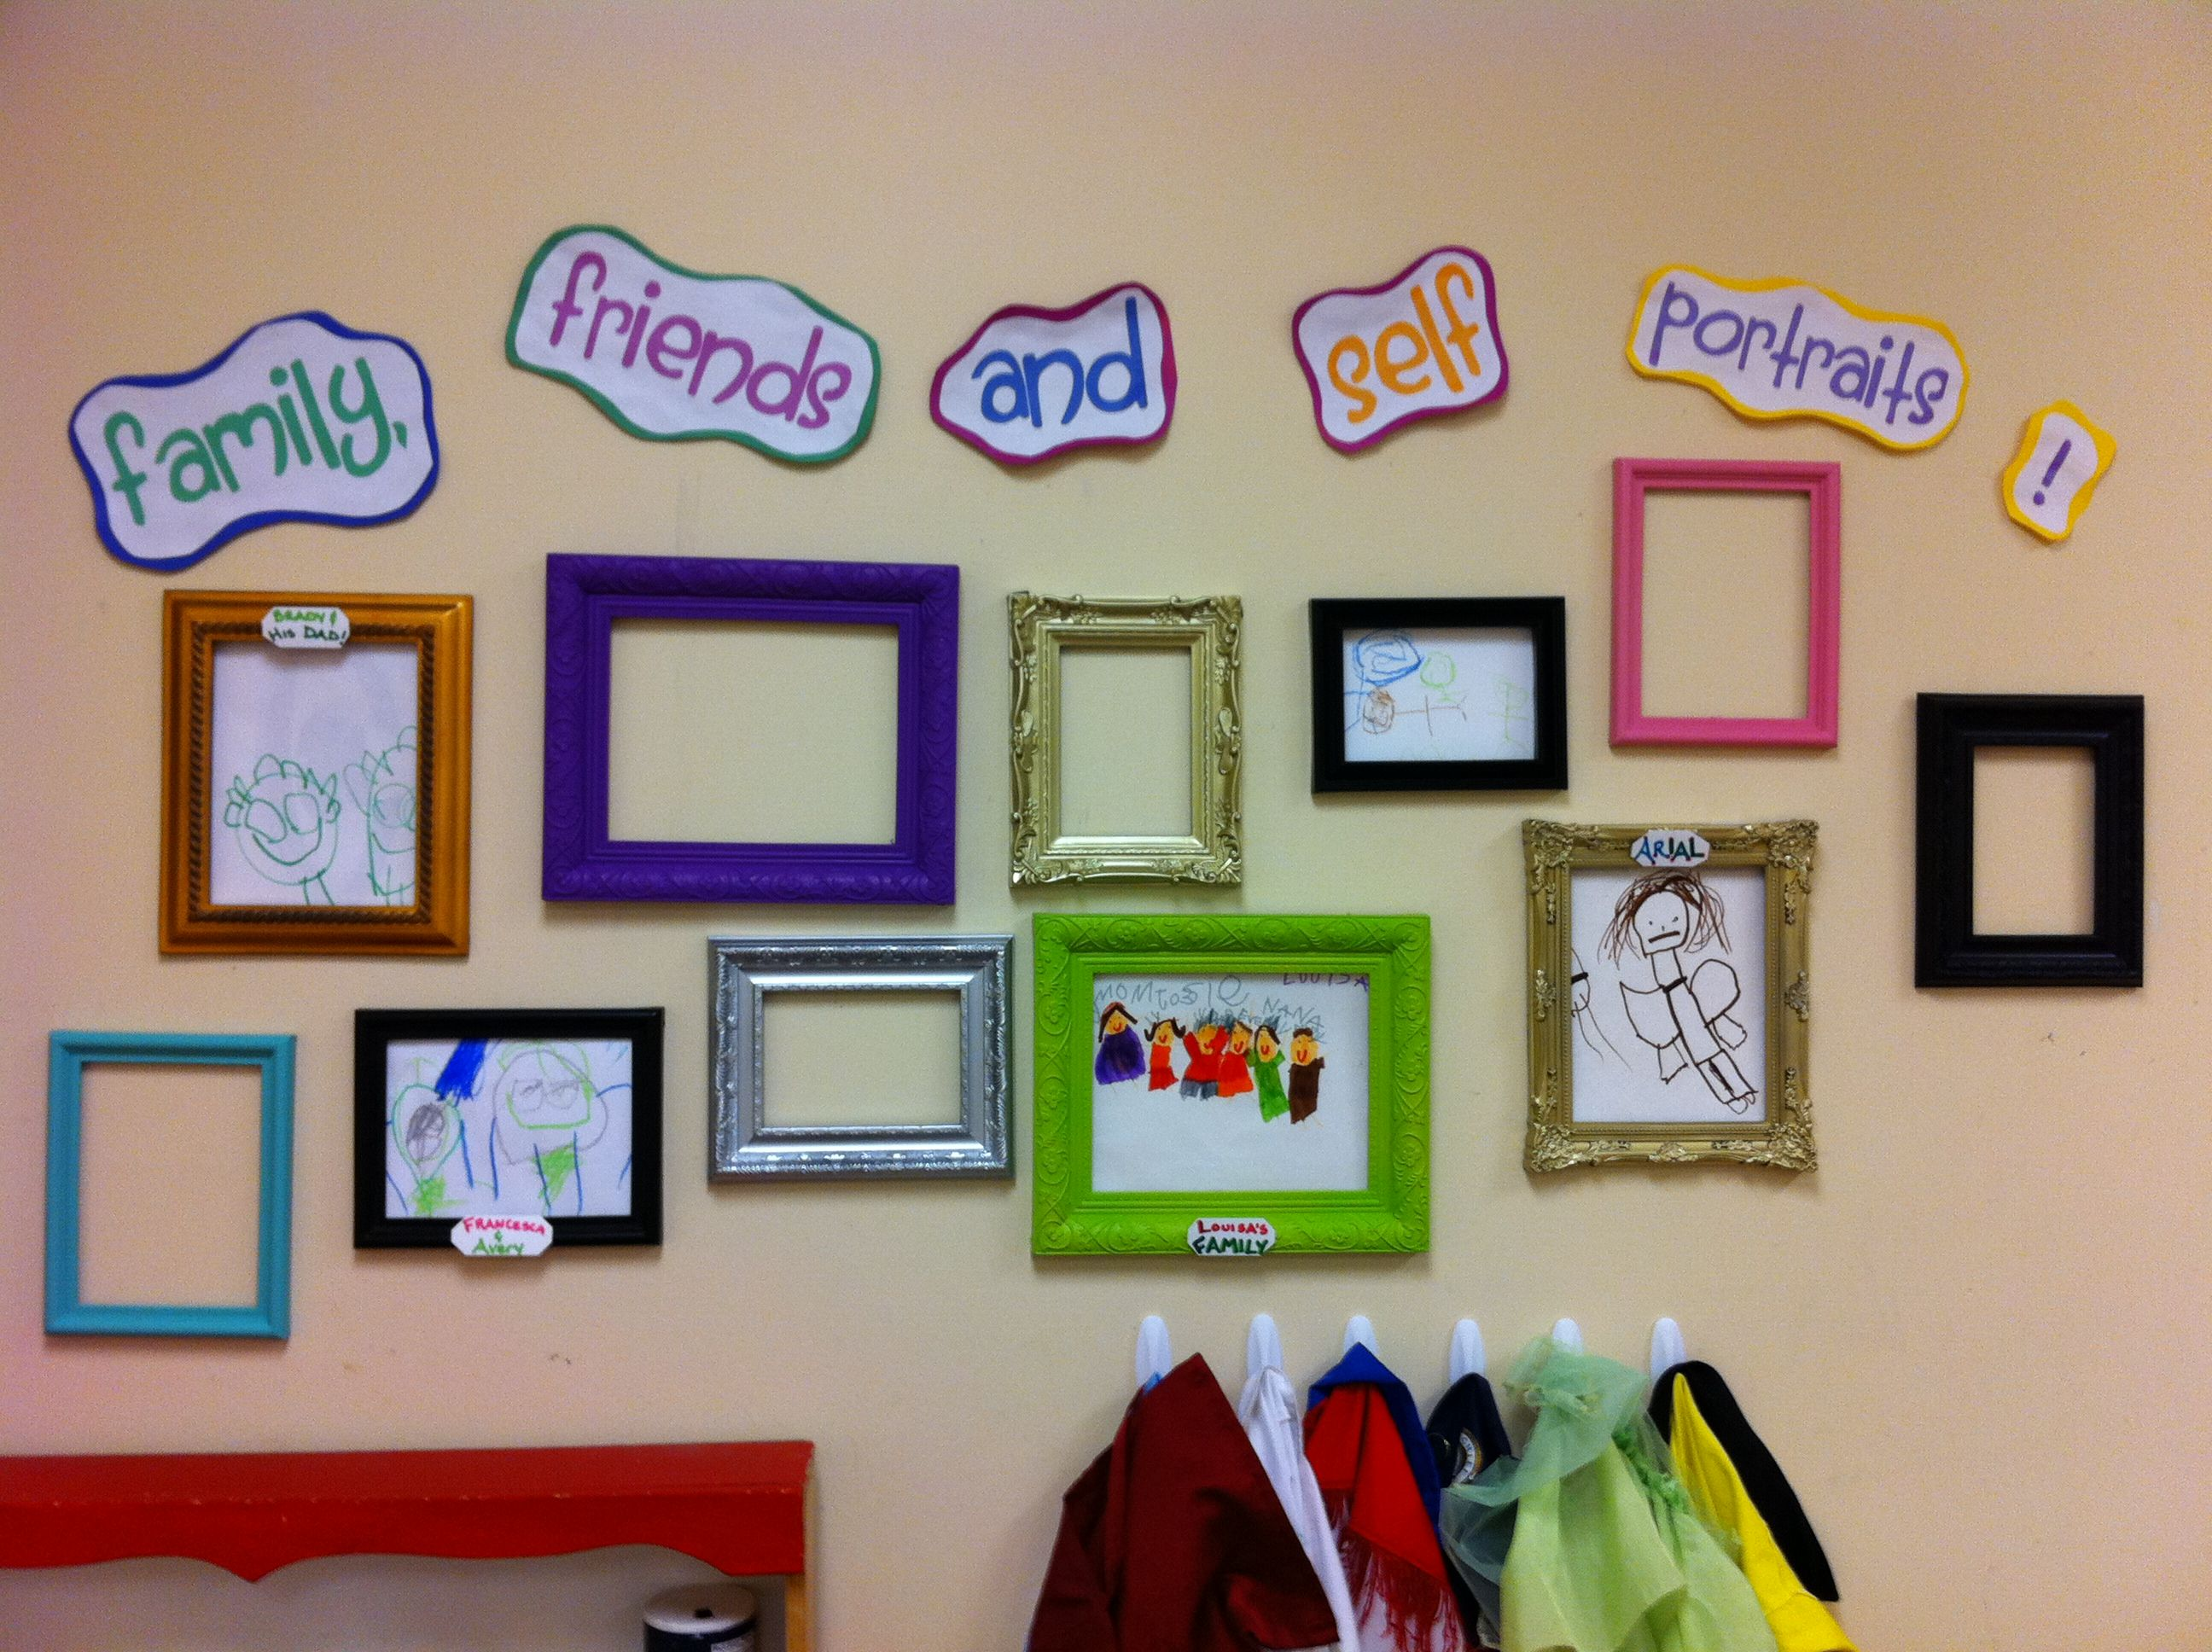 Wall colors for preschool rooms - Artwork With Frames Interchangeable Family Art Wall For A Preschool Classroom